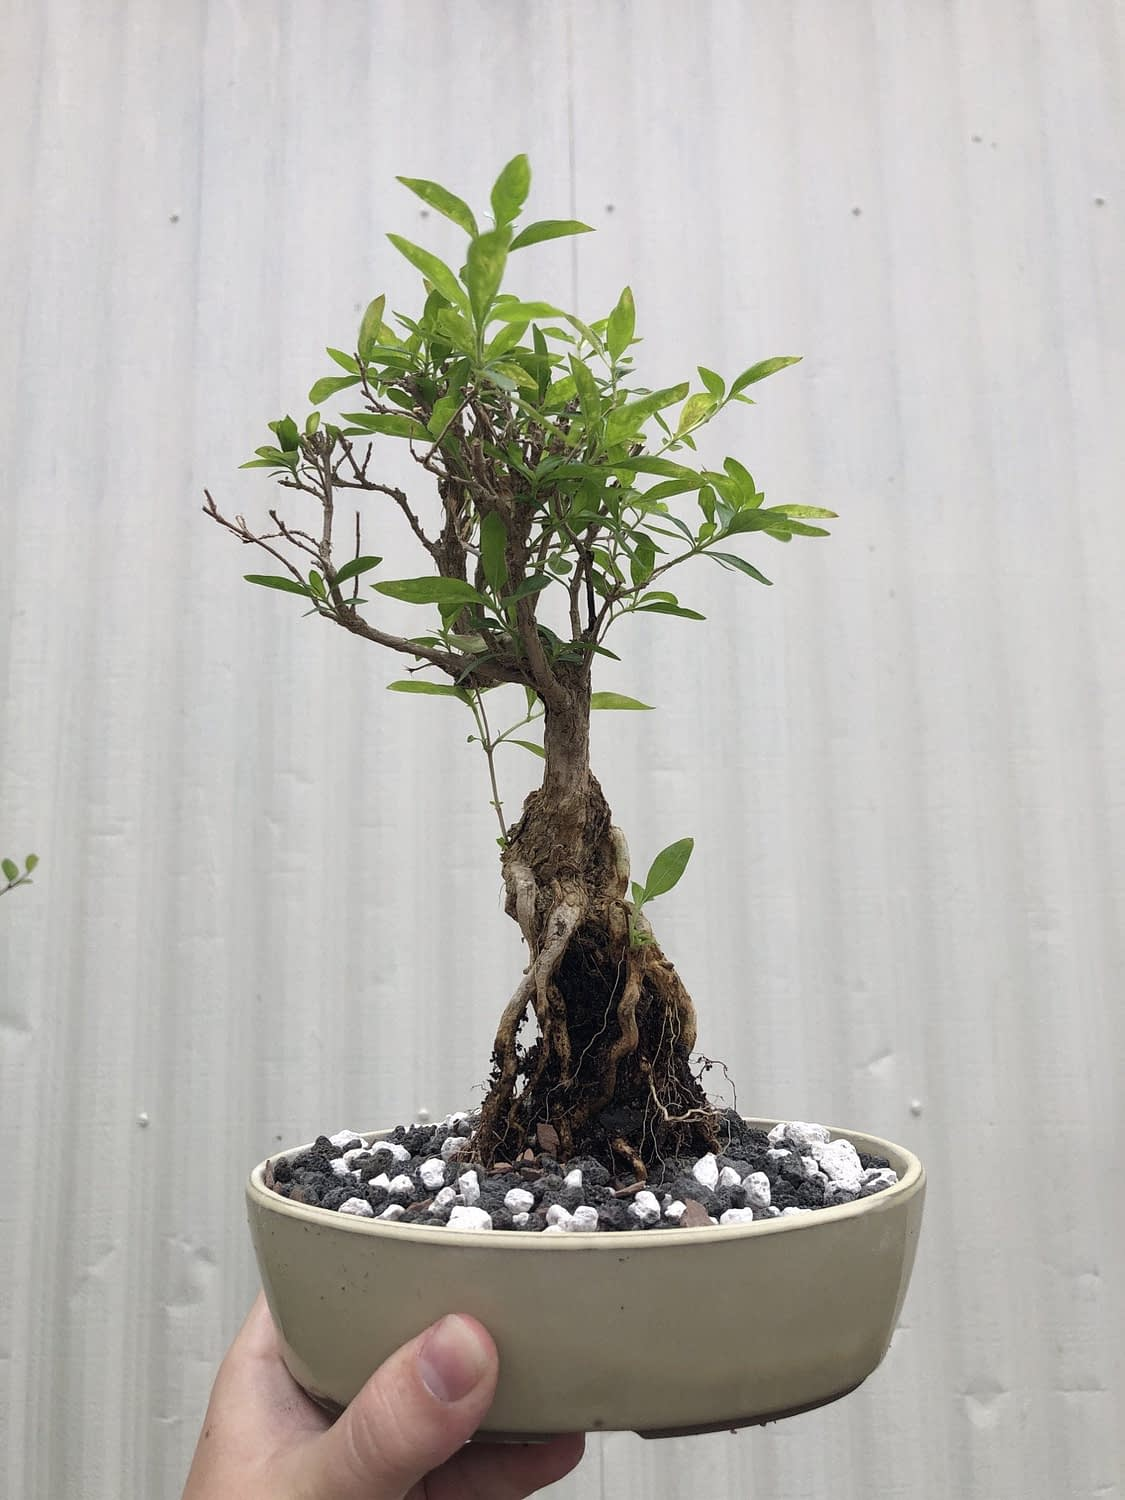 new willow-leaf fig I potted up the other day